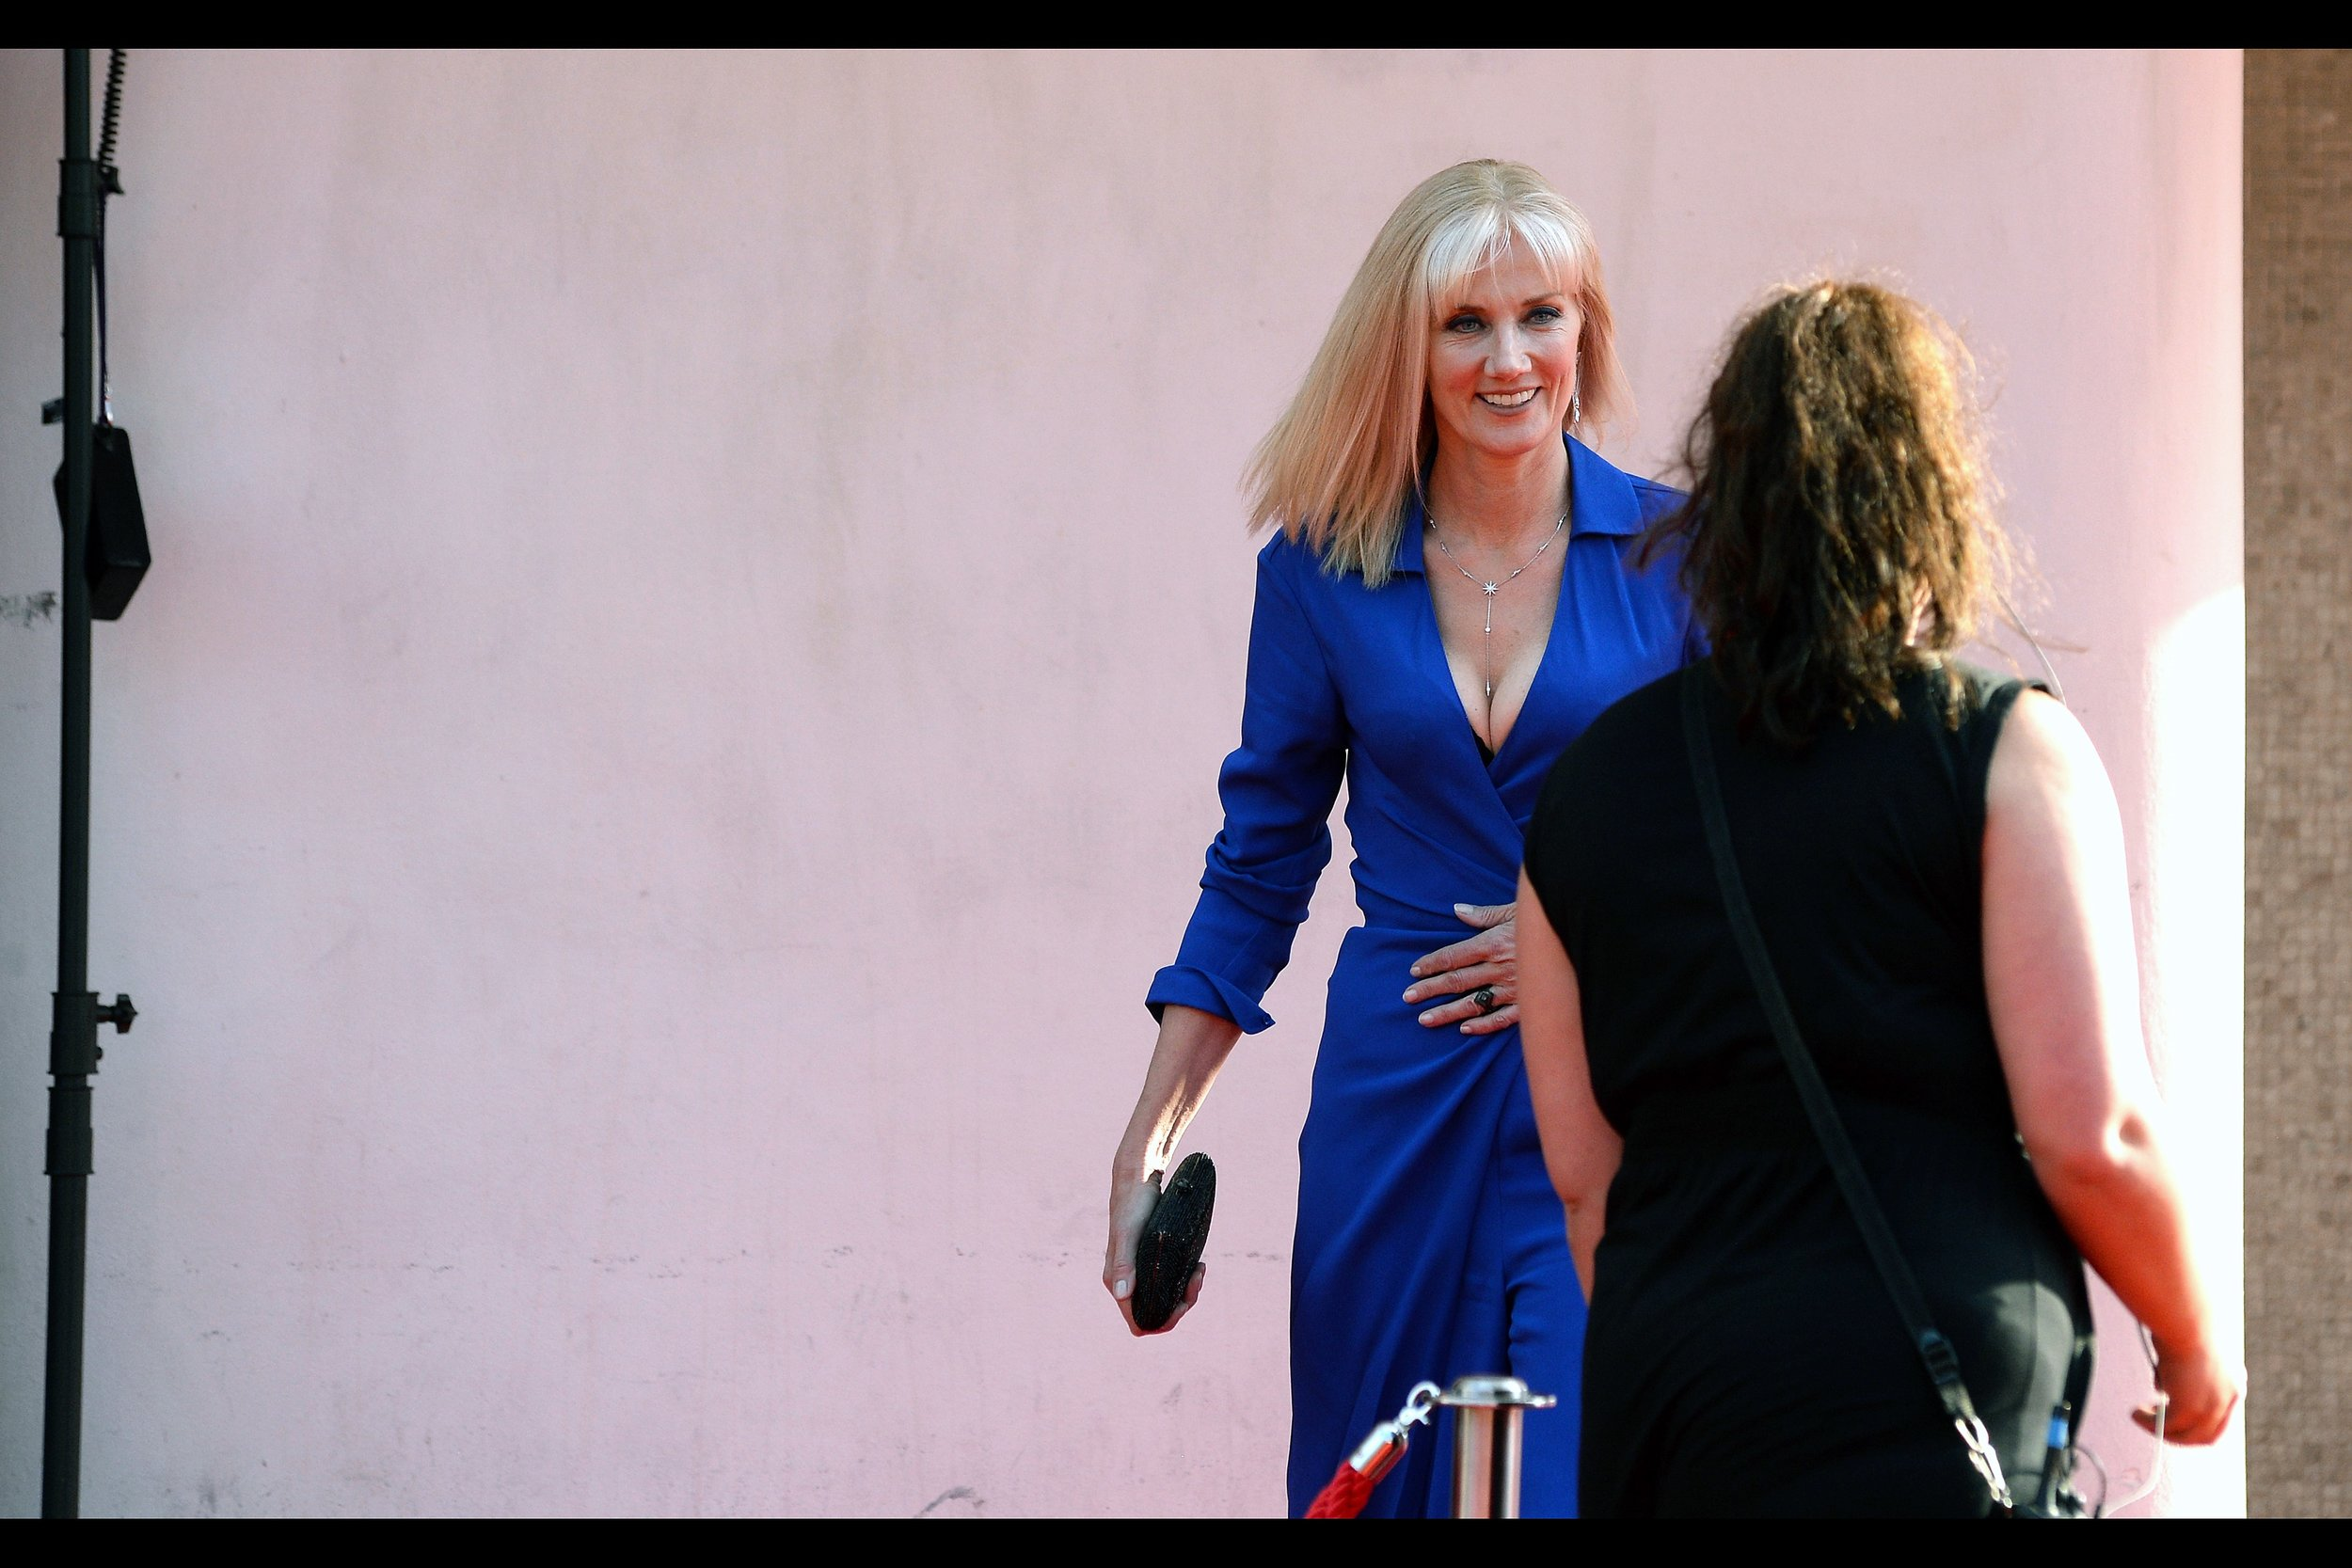 """Joely Richardson.... she was in the Roland Emmerich's Shakespeare conspiracy movie """"Anonymous"""" as well as having a small role in David Fincher's """"The Girl With the Dragon Tattoo"""". Her dress probably wasn't in both... or either of those films."""